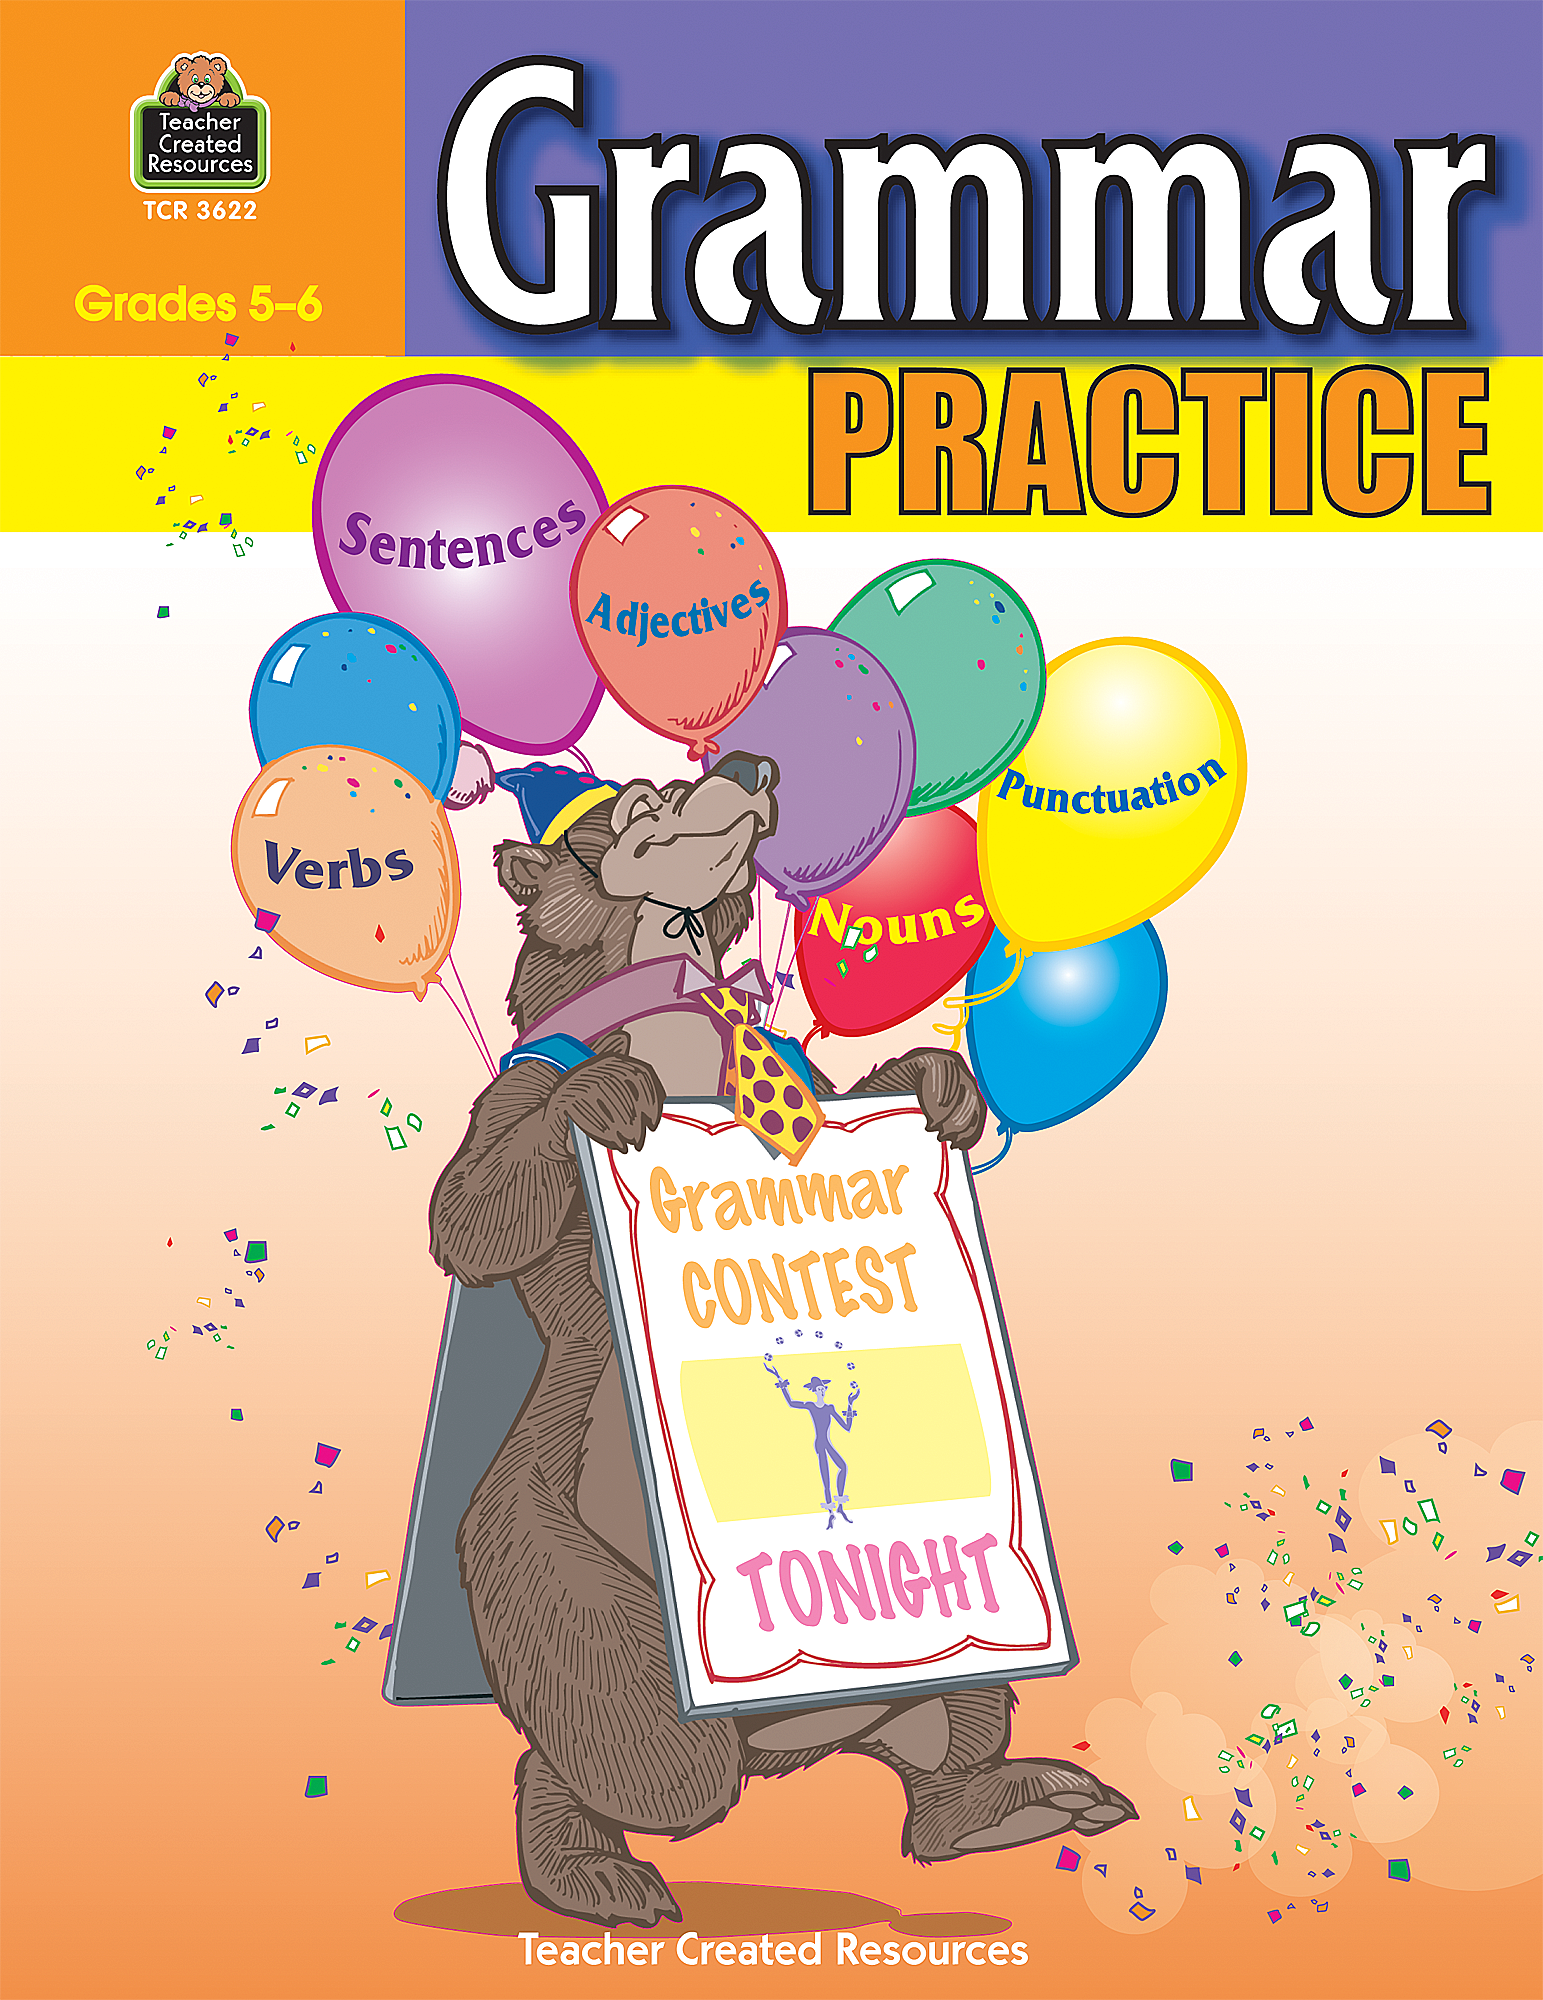 Grammar practice for grades 5 6 tcr3622 teacher created resources sciox Gallery